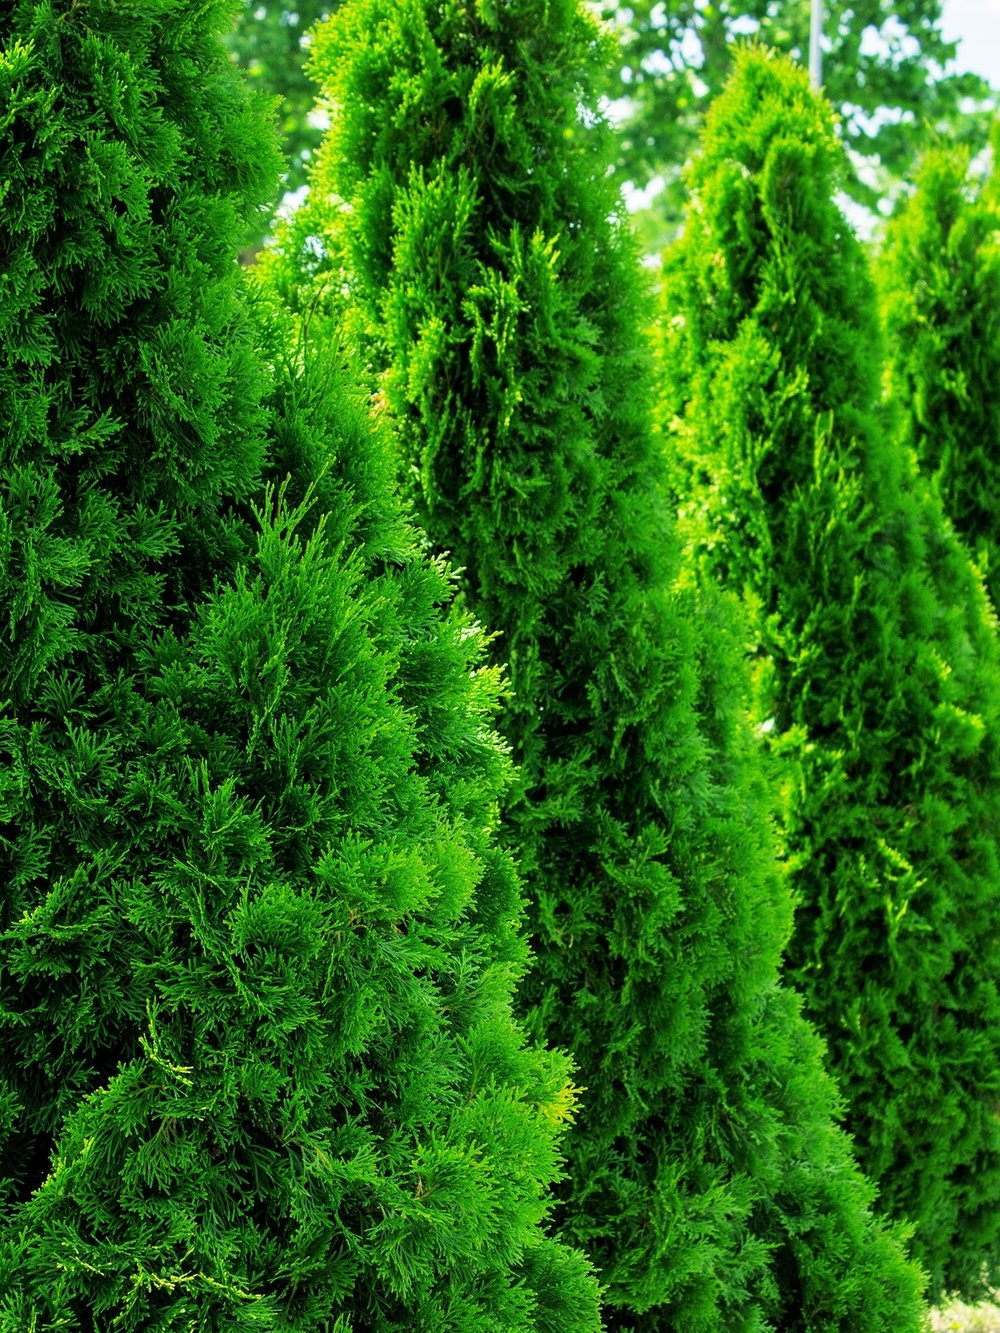 Thuja (aborvitae) - A substitute for Leyland Cypress, many people cannot tell the the Leyland from the 'Green Giant' arborvitae. 'Green Giant' or 'Emerald Green' is a better fit in smaller landscapes.Zone: 5-8Size: 30'-40' x 15'-20, or more narrow varieties 10'-12' x 3'Cultivars suggested: 'Green Giant', 'Emerald Green', 'Yellow Ribbon'Culture: Full sun to part shadeGrowth rate: Medium to FastPests and Disease: No serious issue, sometimes scale or bagworms*'Green Giant' pictured